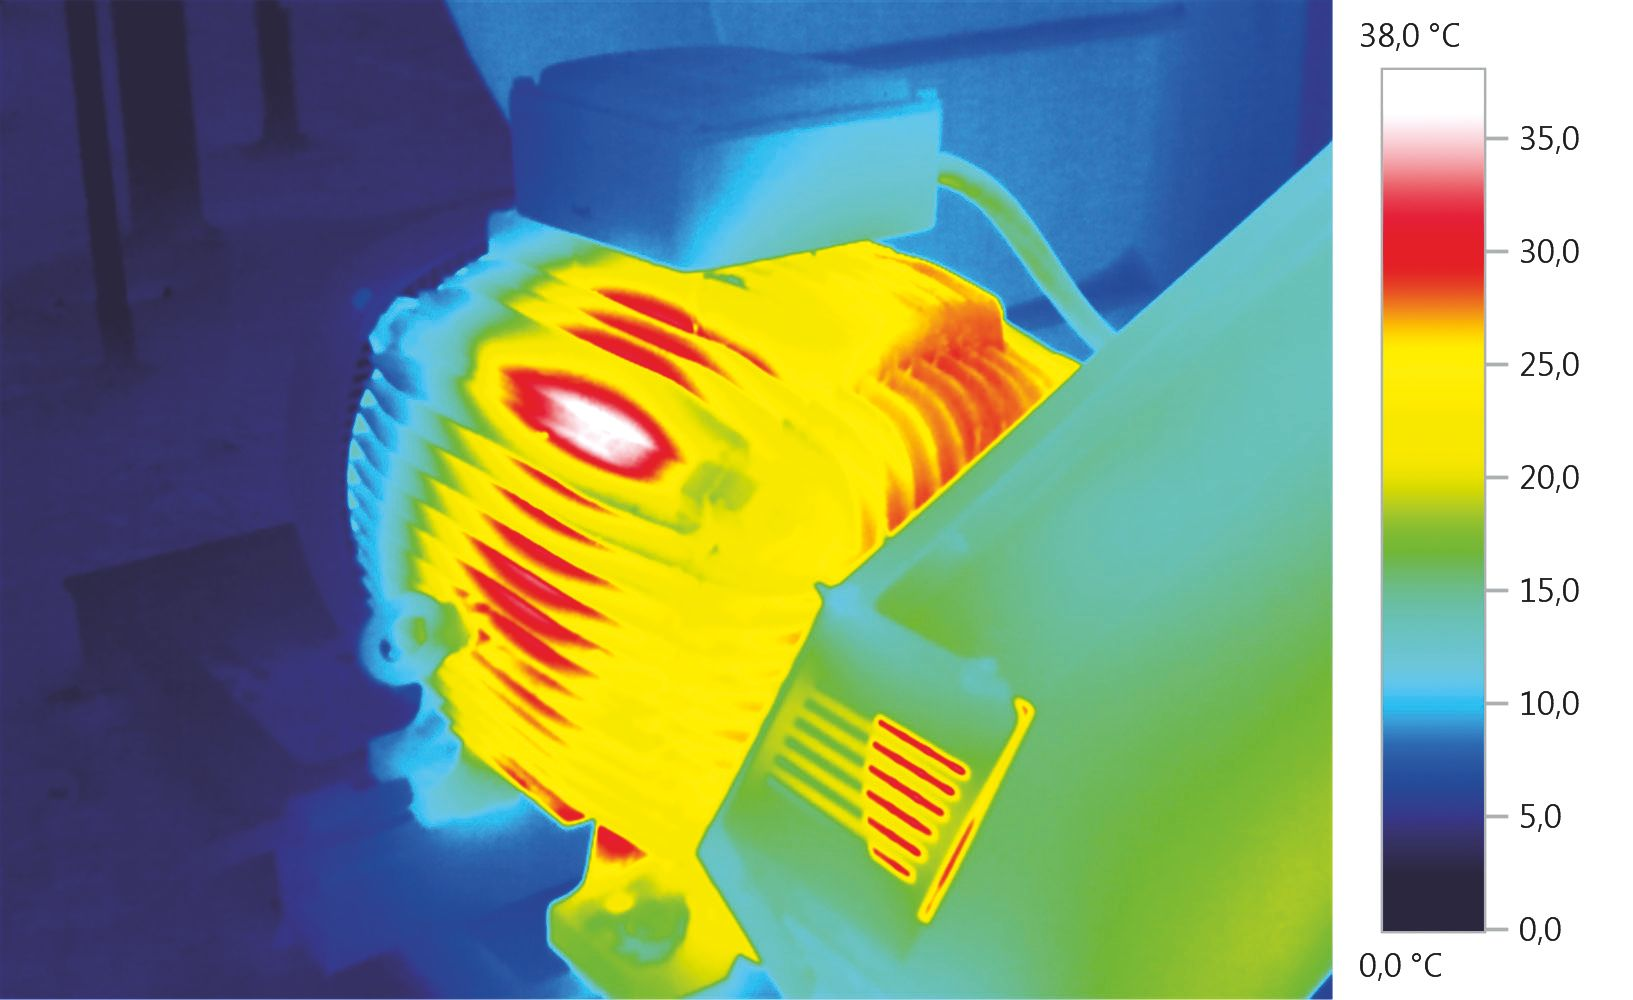 location-thermography-004906.jpg